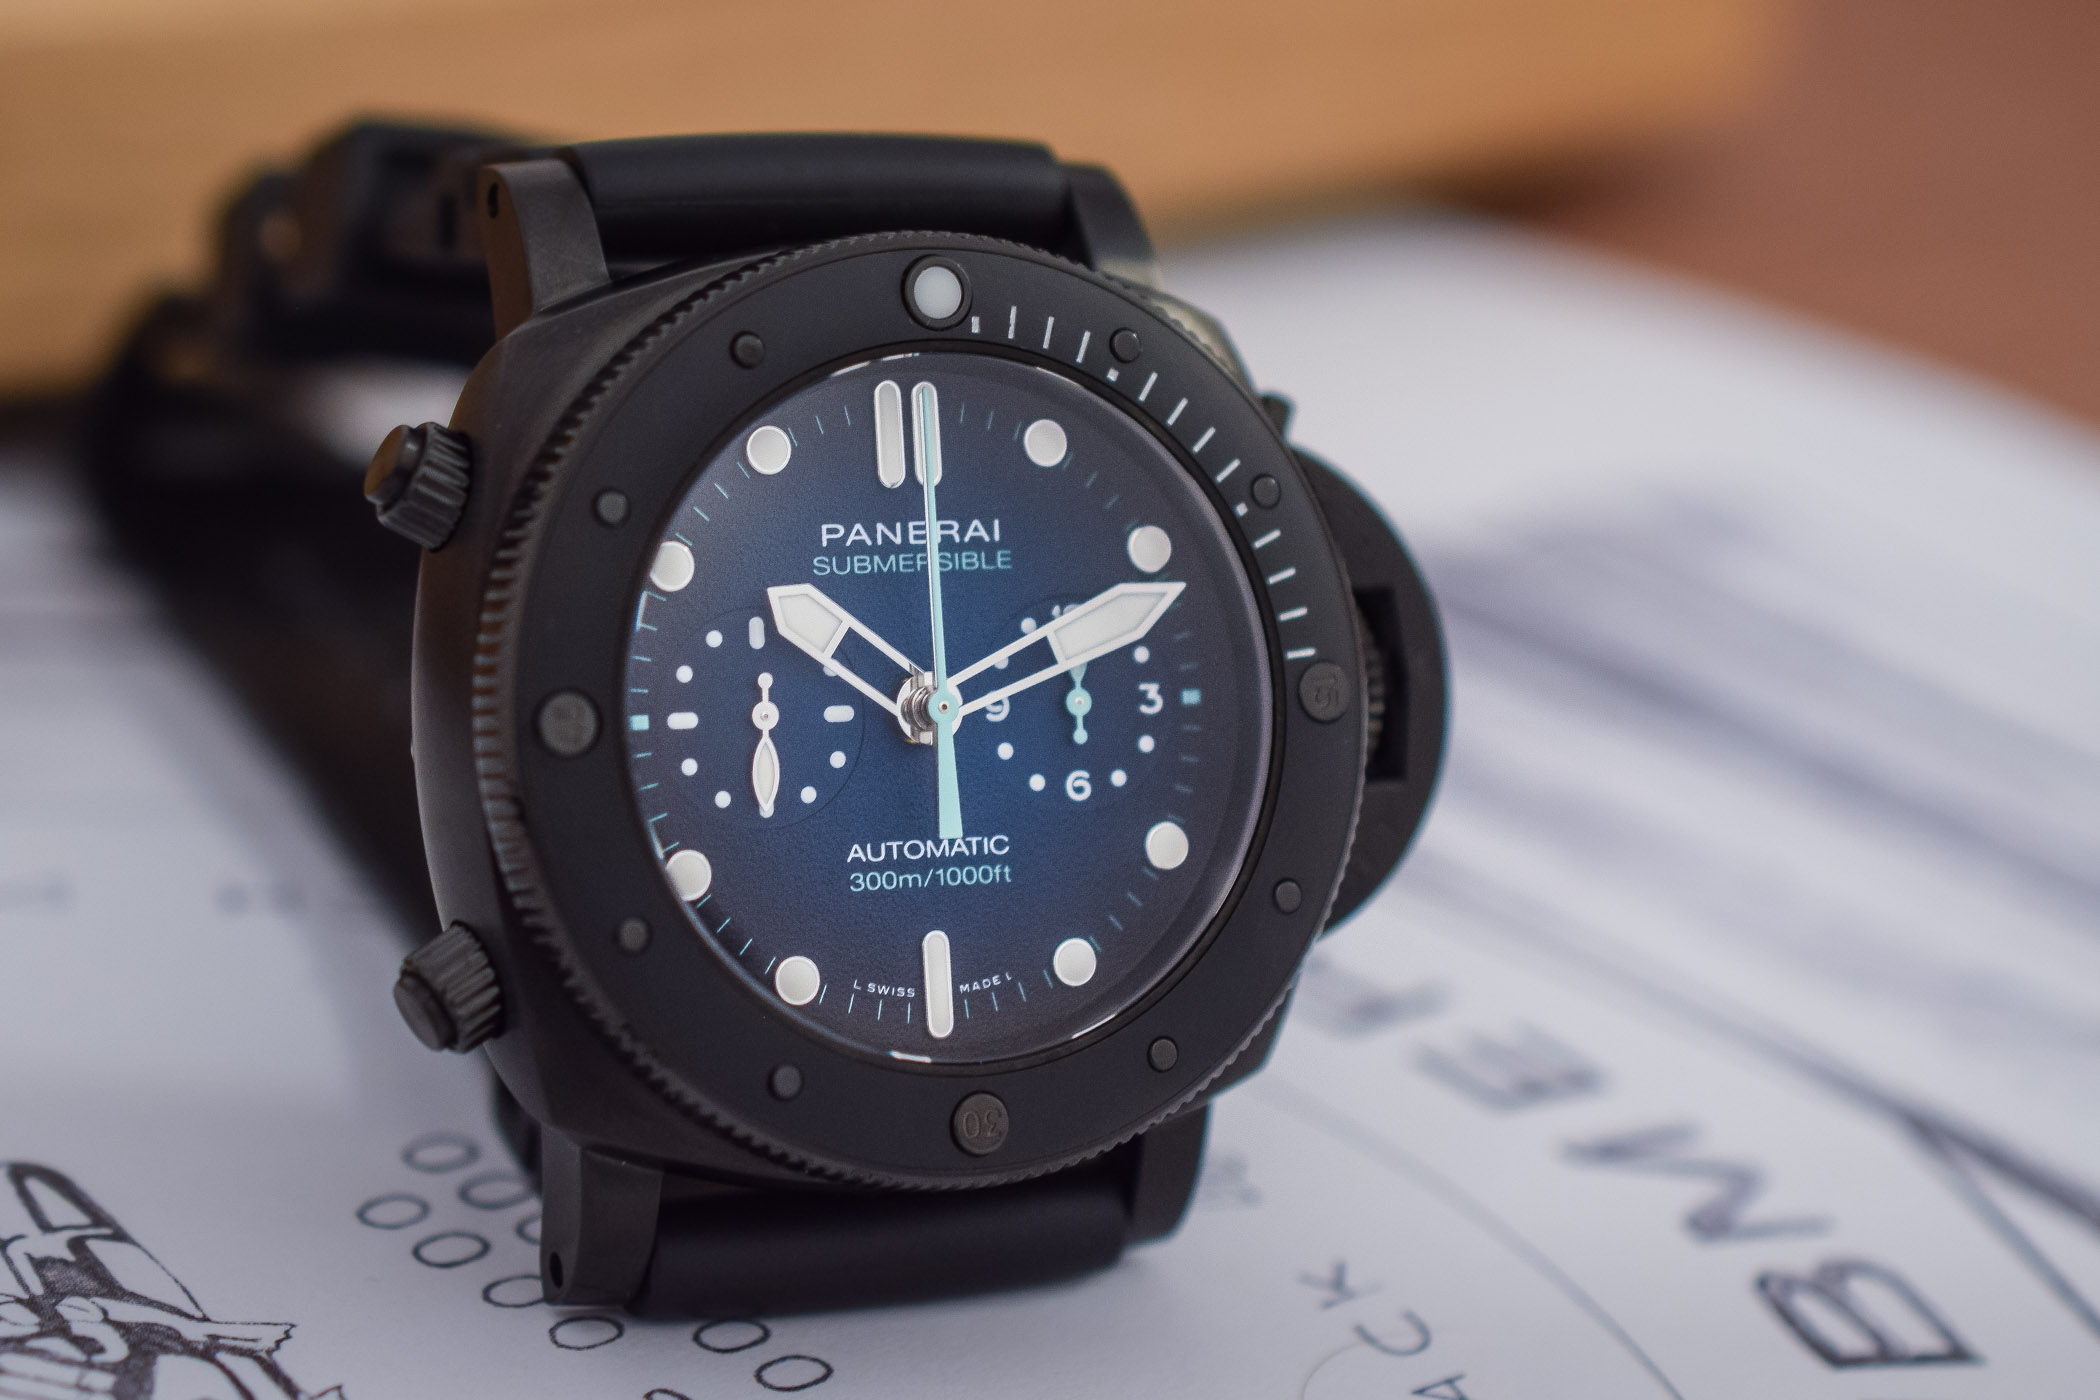 Panerai Submersible Chrono Guillaume Nery Edition PAM00983 - 8